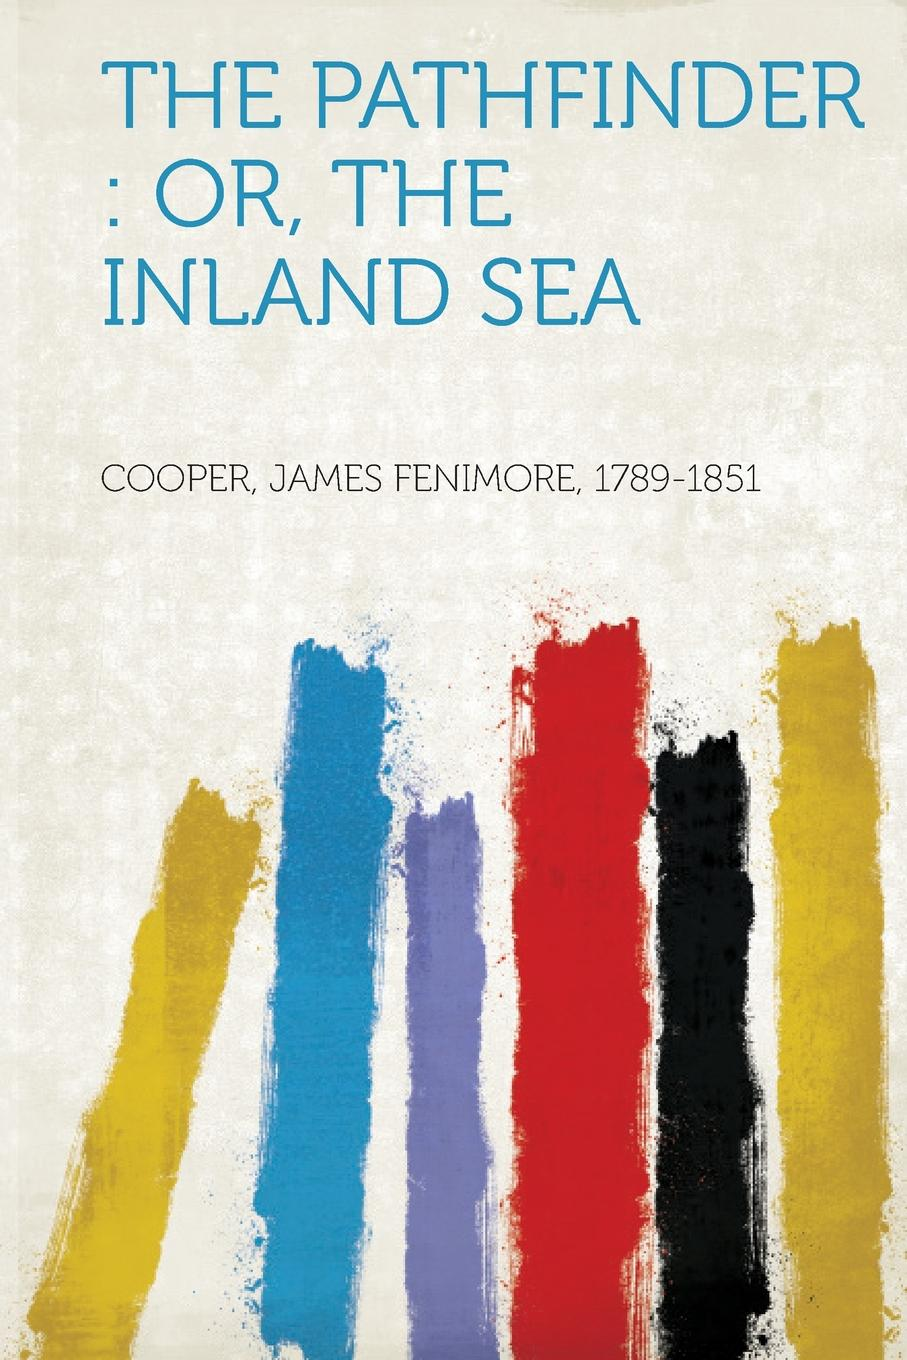 Cooper James Fenimore 1789-1851 The Pathfinder. Or, the Inland Sea j f cooper the pathfinder or the inland sea